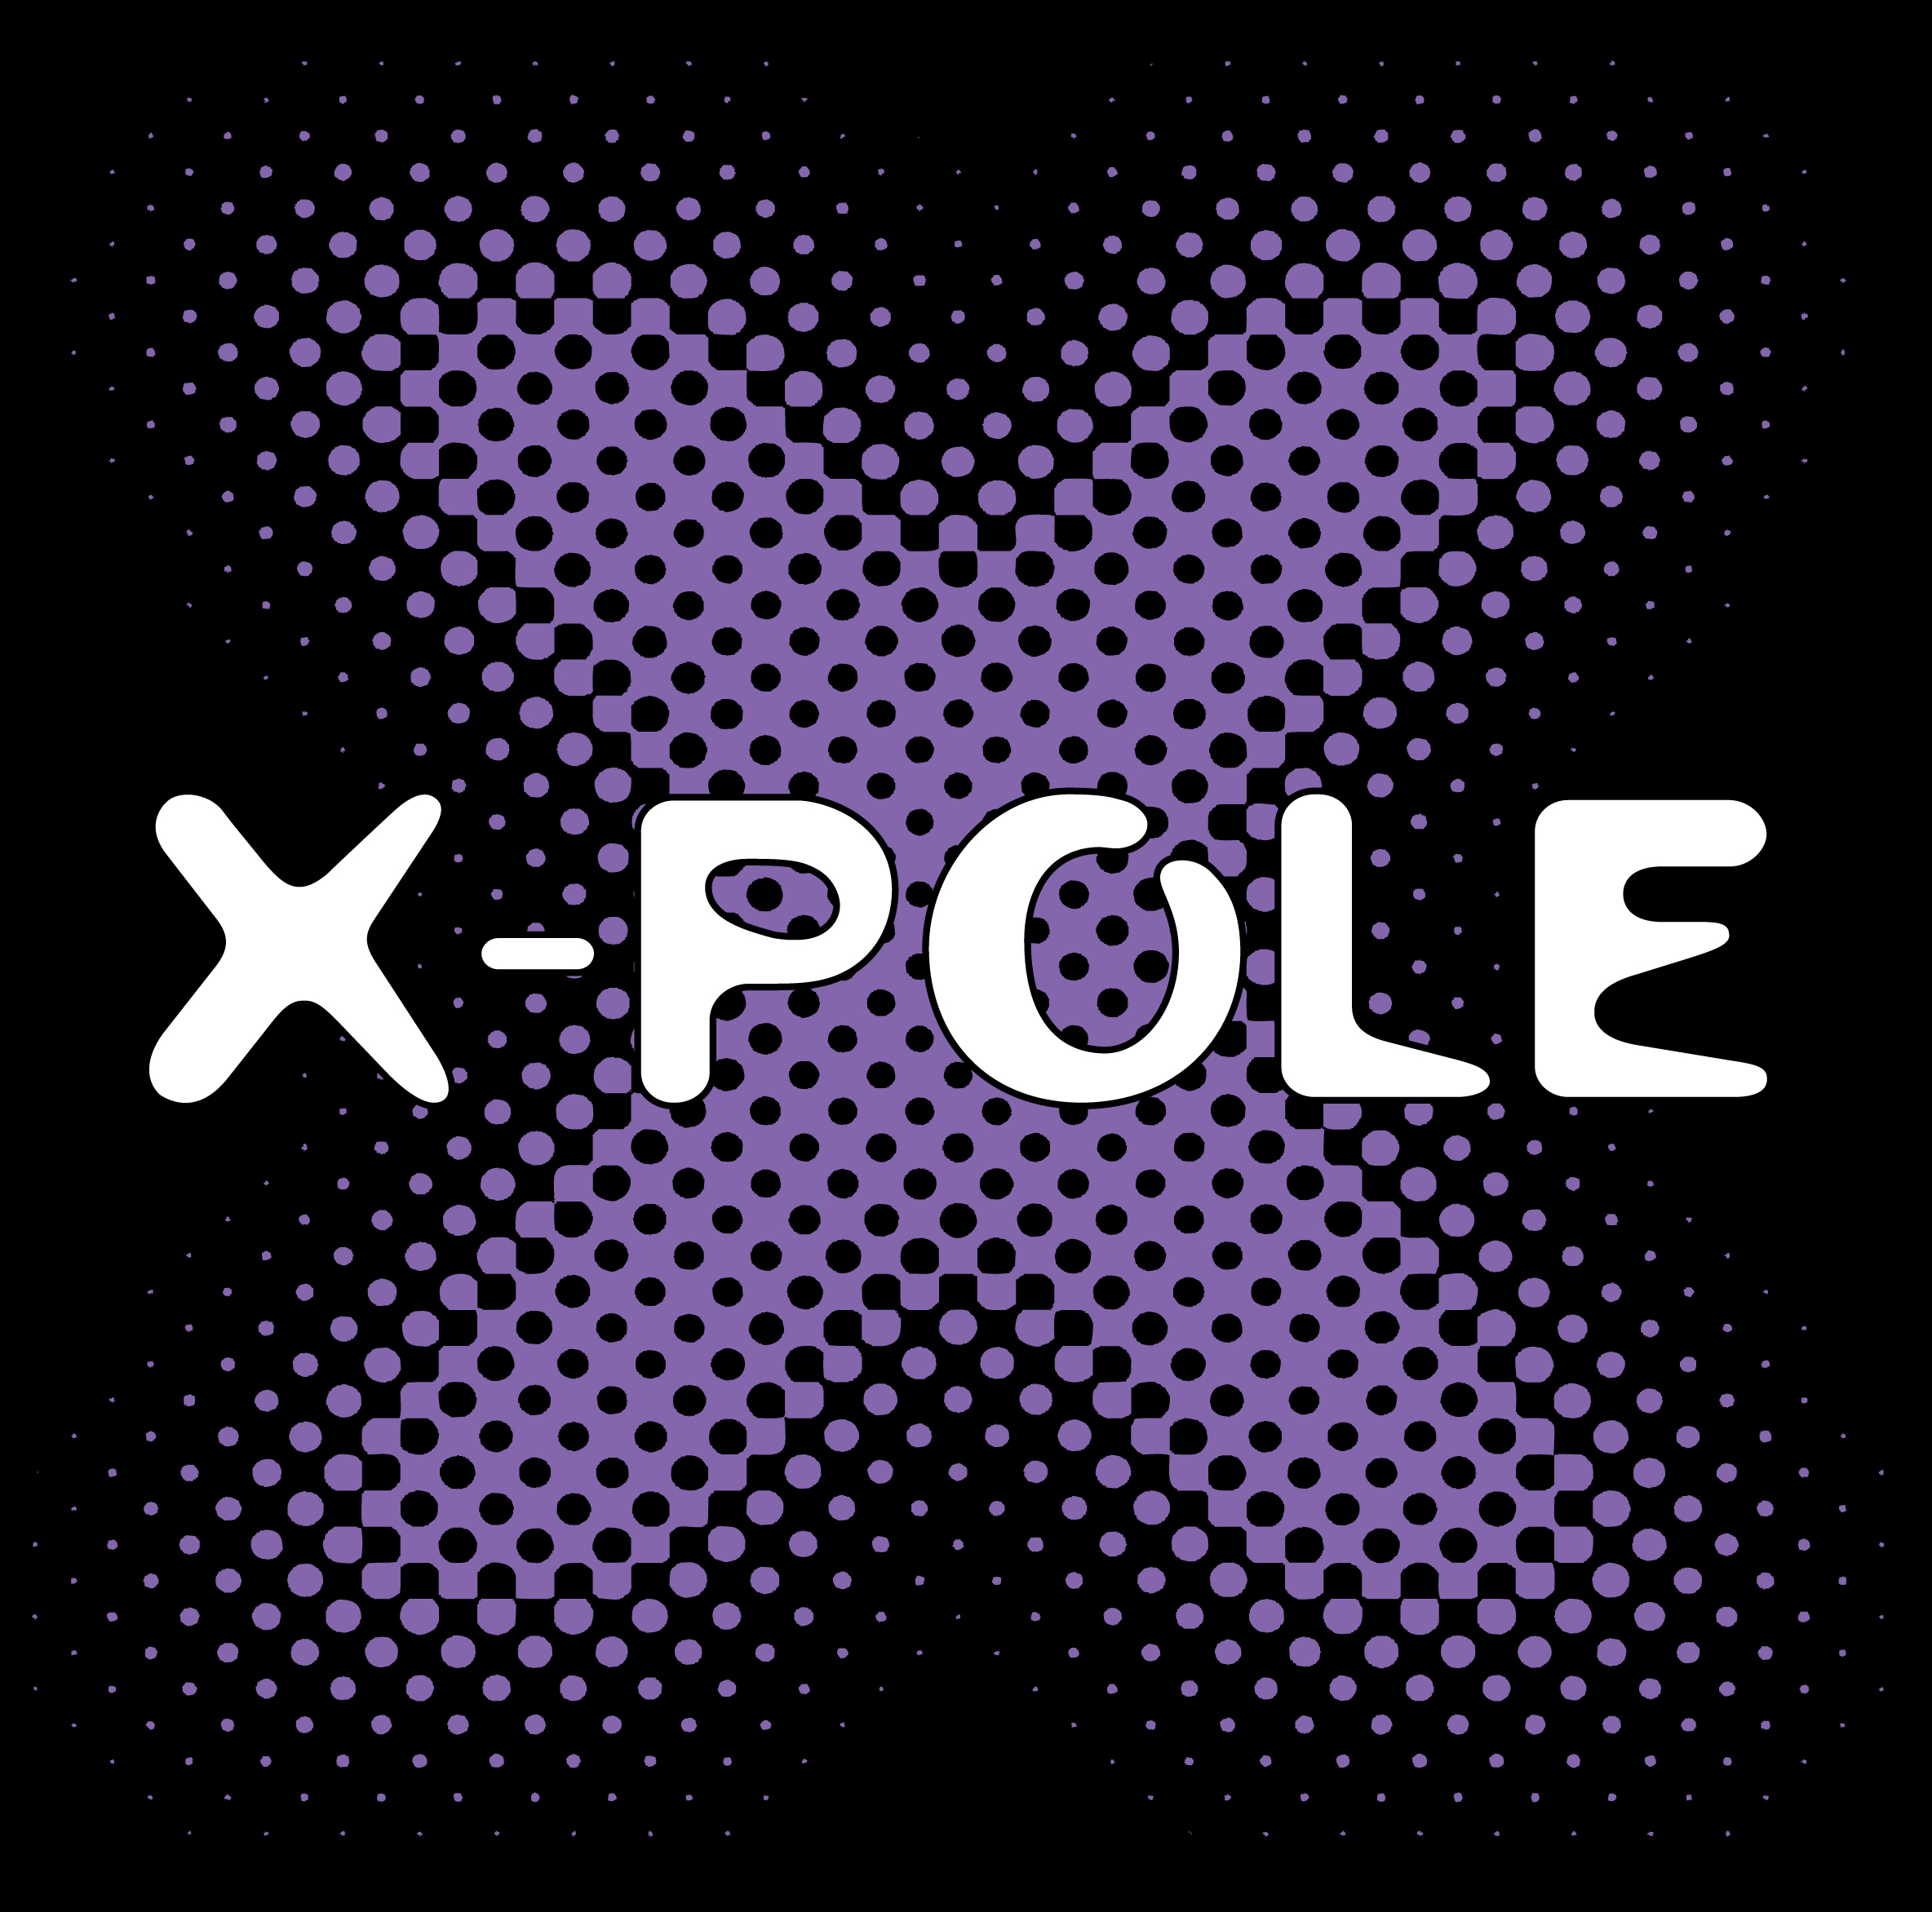 X-pole-Logo-Black-NEW1.jpg